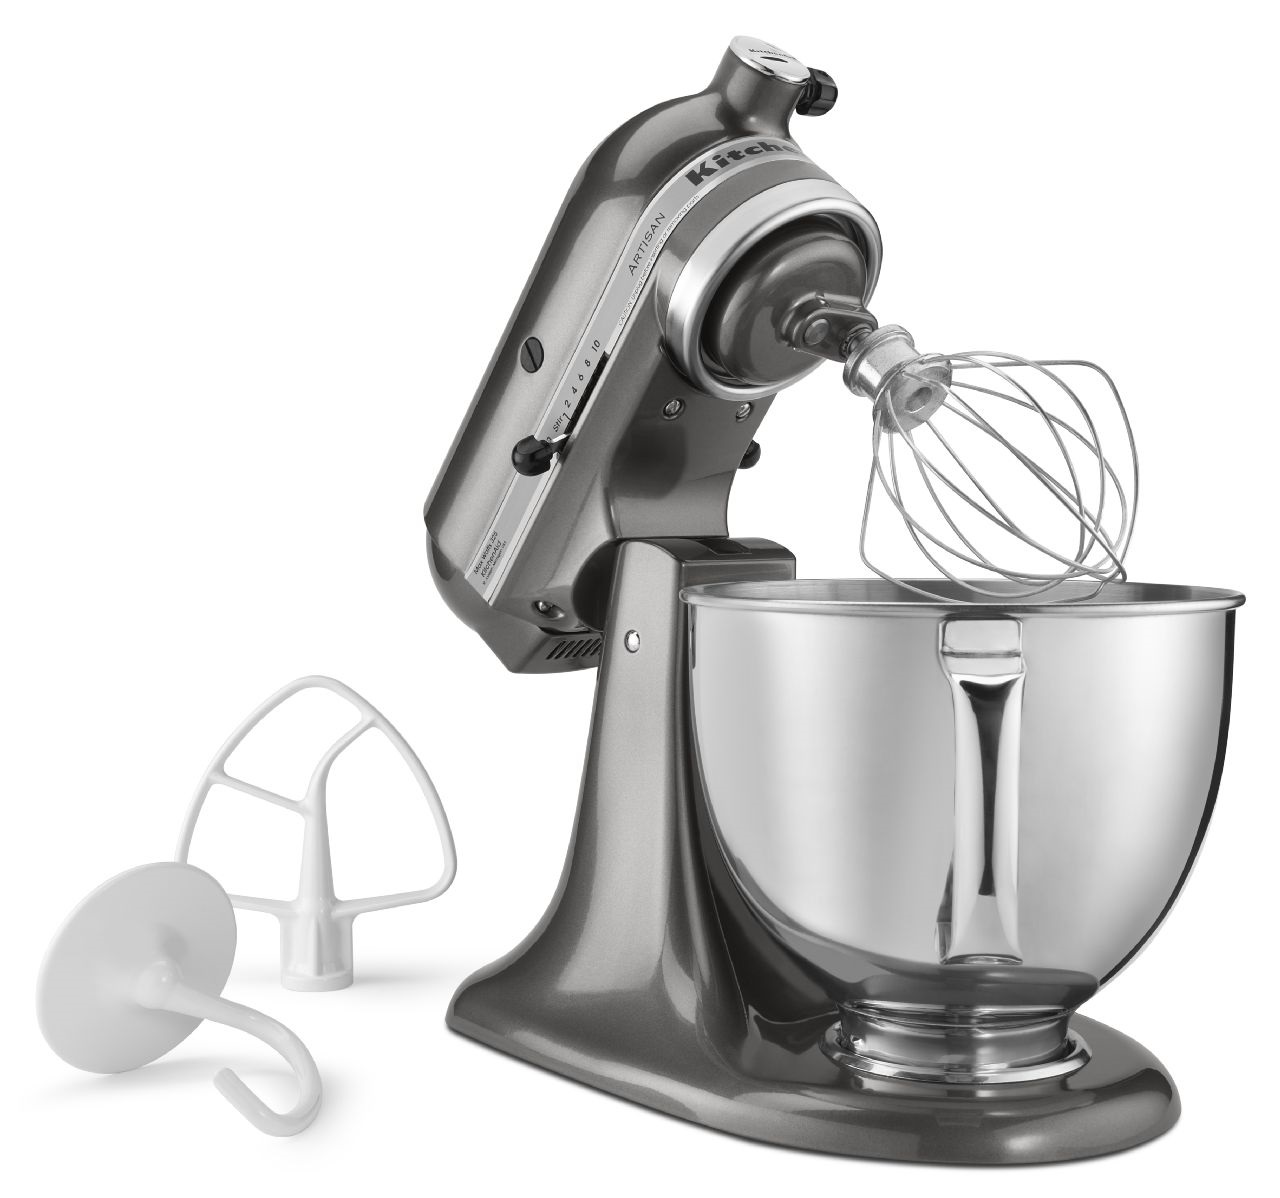 KitchenAid-Refurbished-Artisan-Series-5-Quart-Tilt-Head-Stand-Mixer-RRK150 thumbnail 68